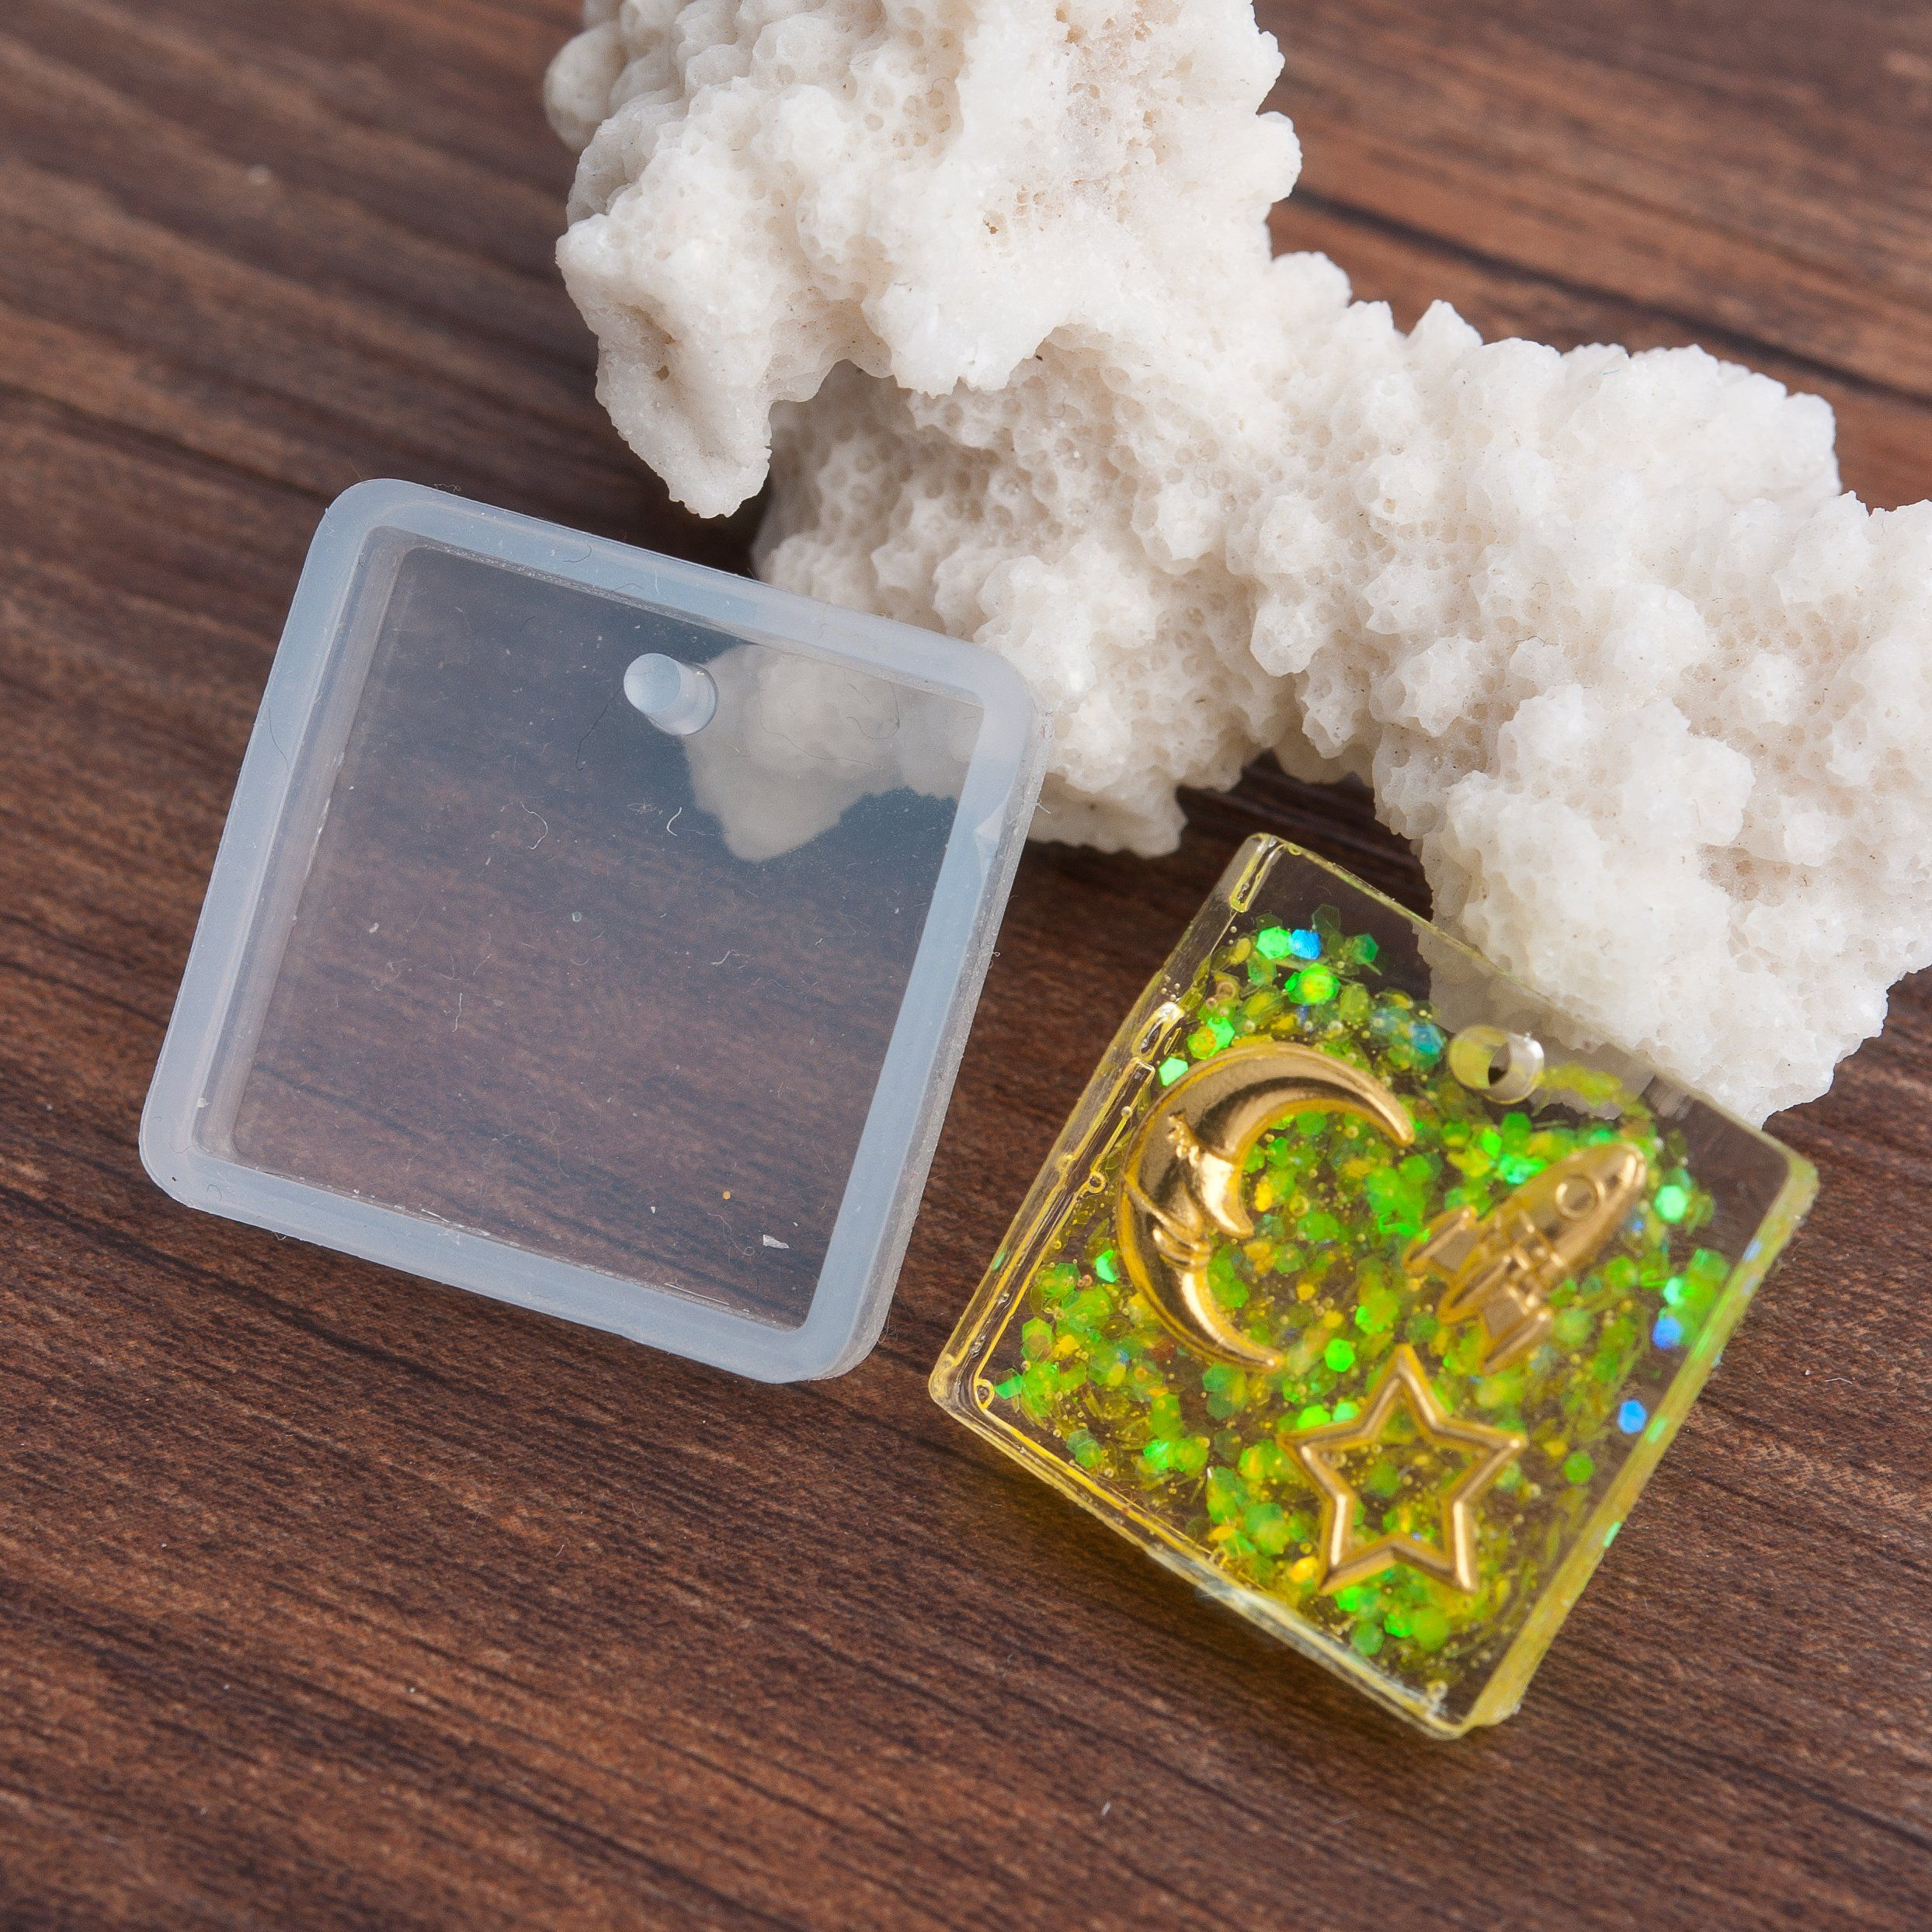 2 RESIN Square PENDANT MOLDS, Silicone Mold to make